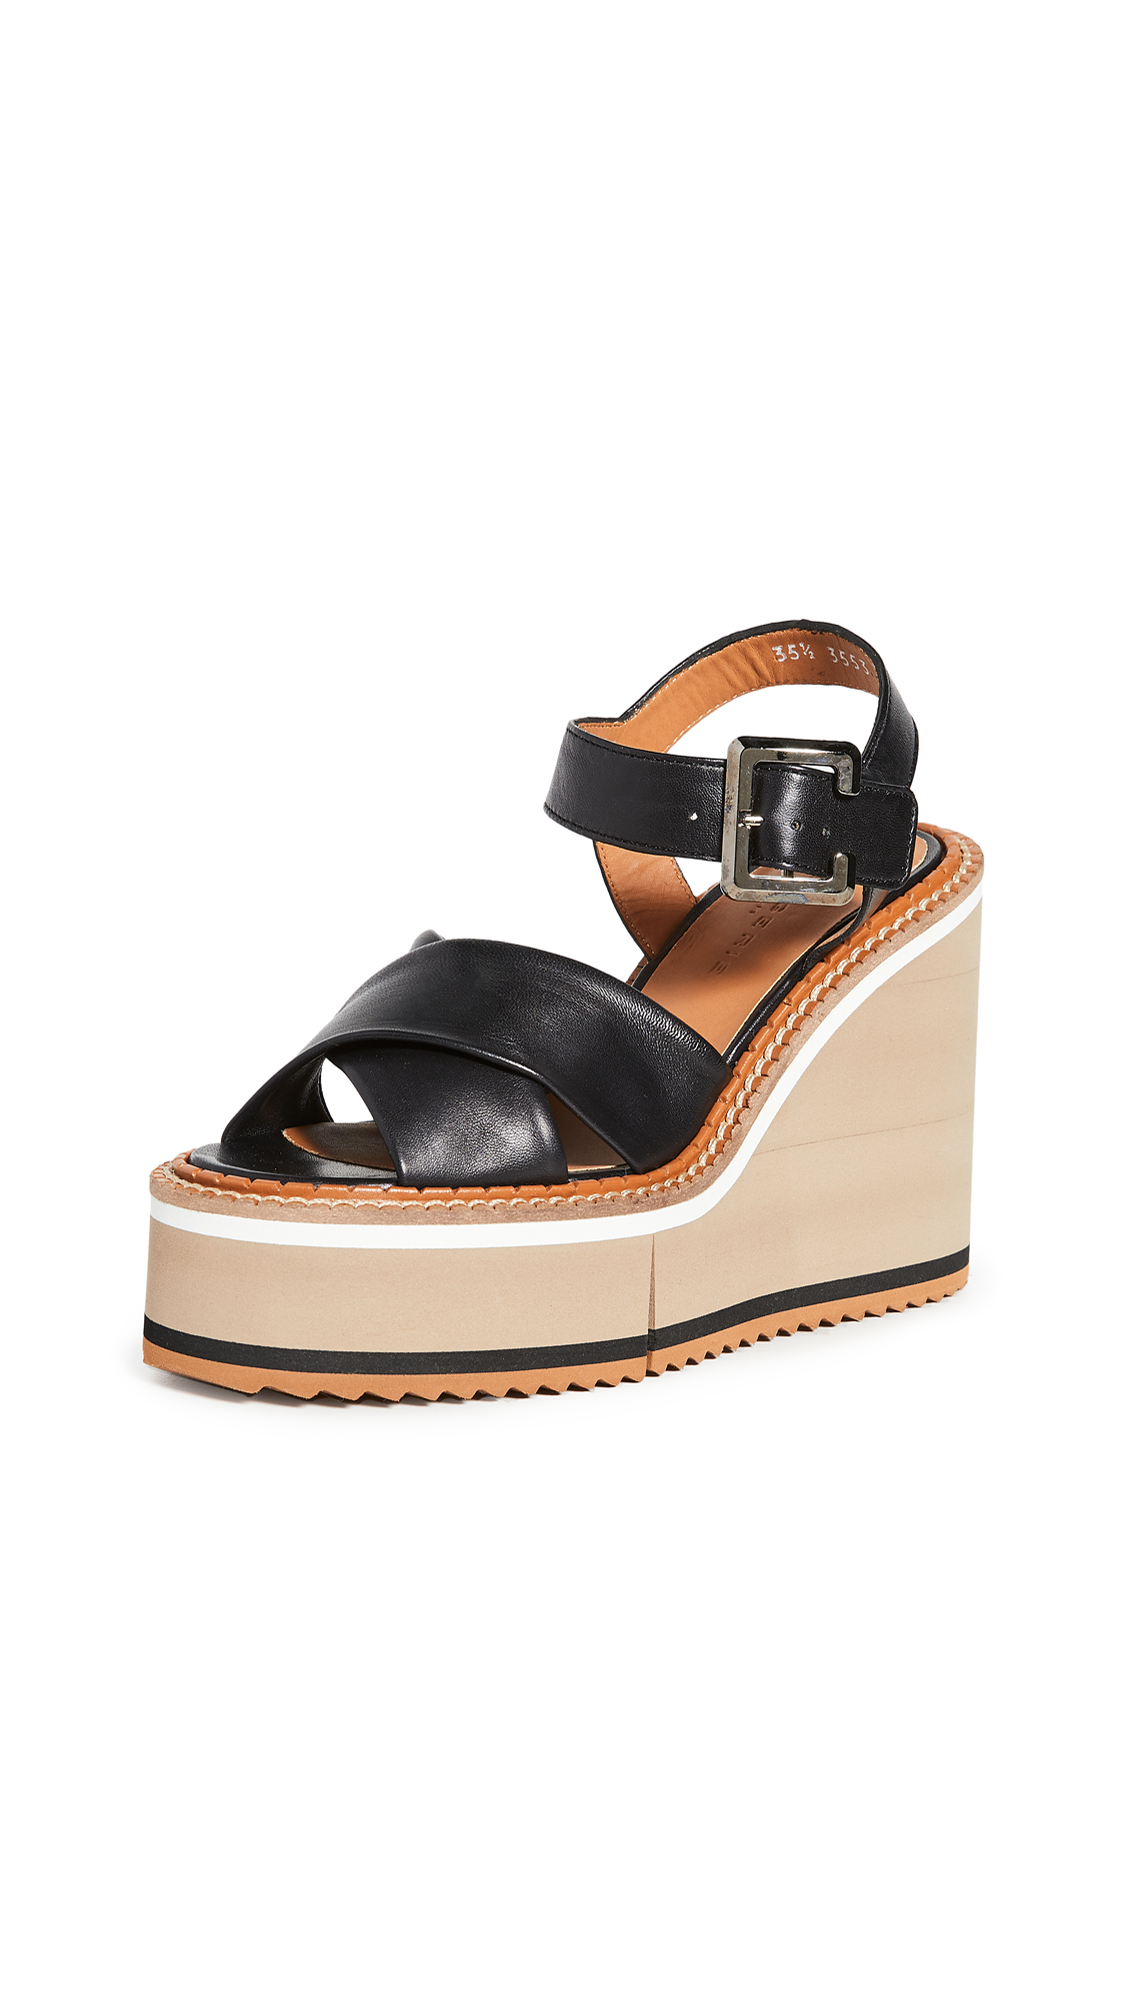 Buy Clergerie Noemie Sandals online, shop Clergerie